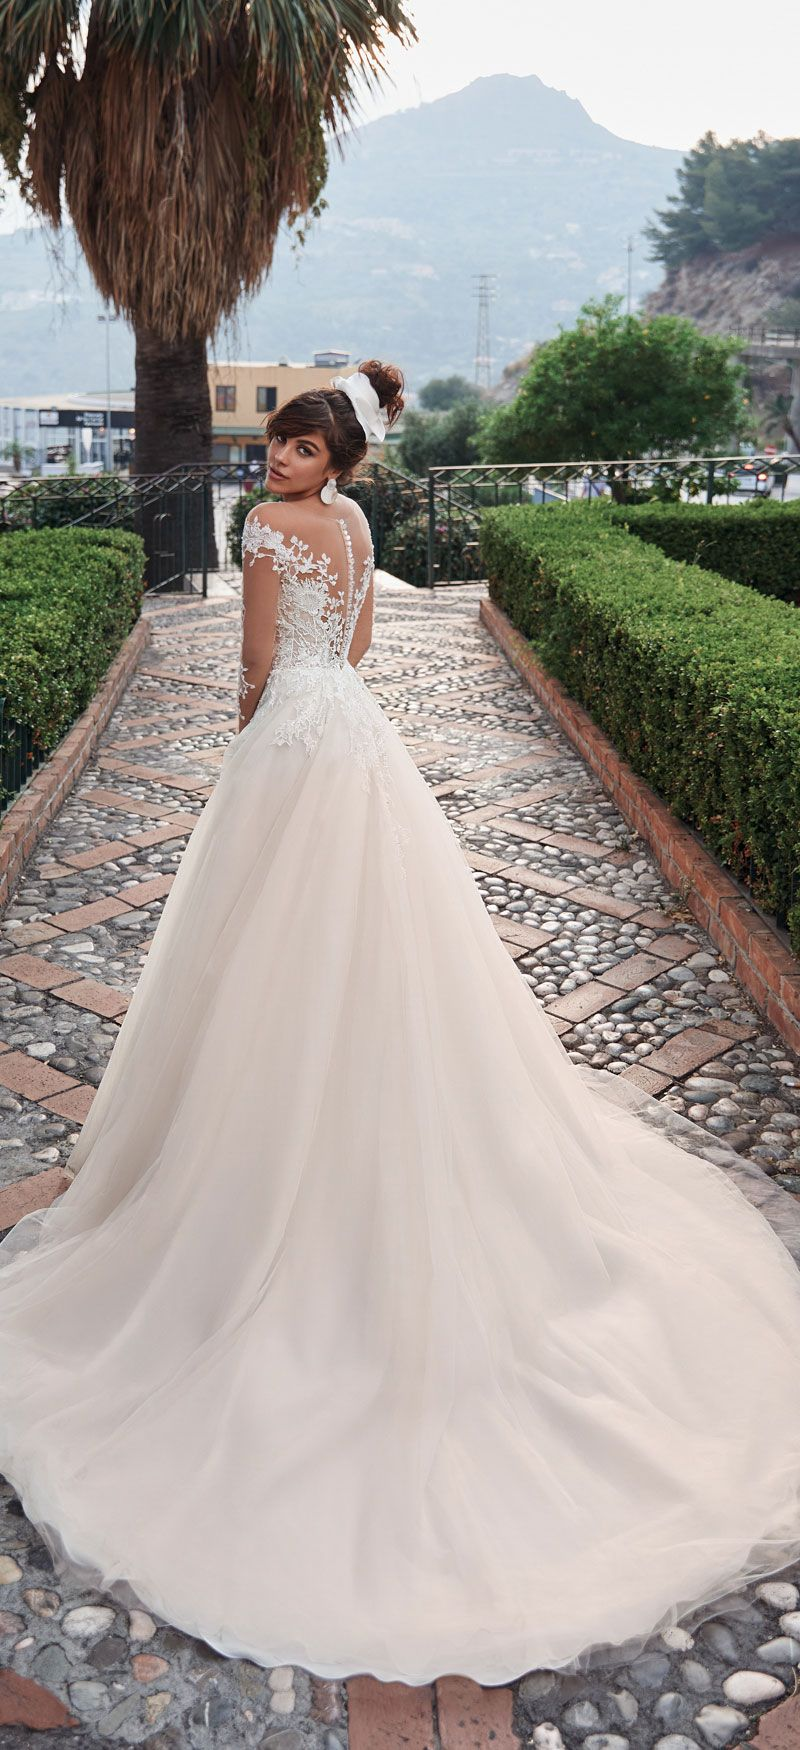 Jaw-dropping long sleeve wedding dresses